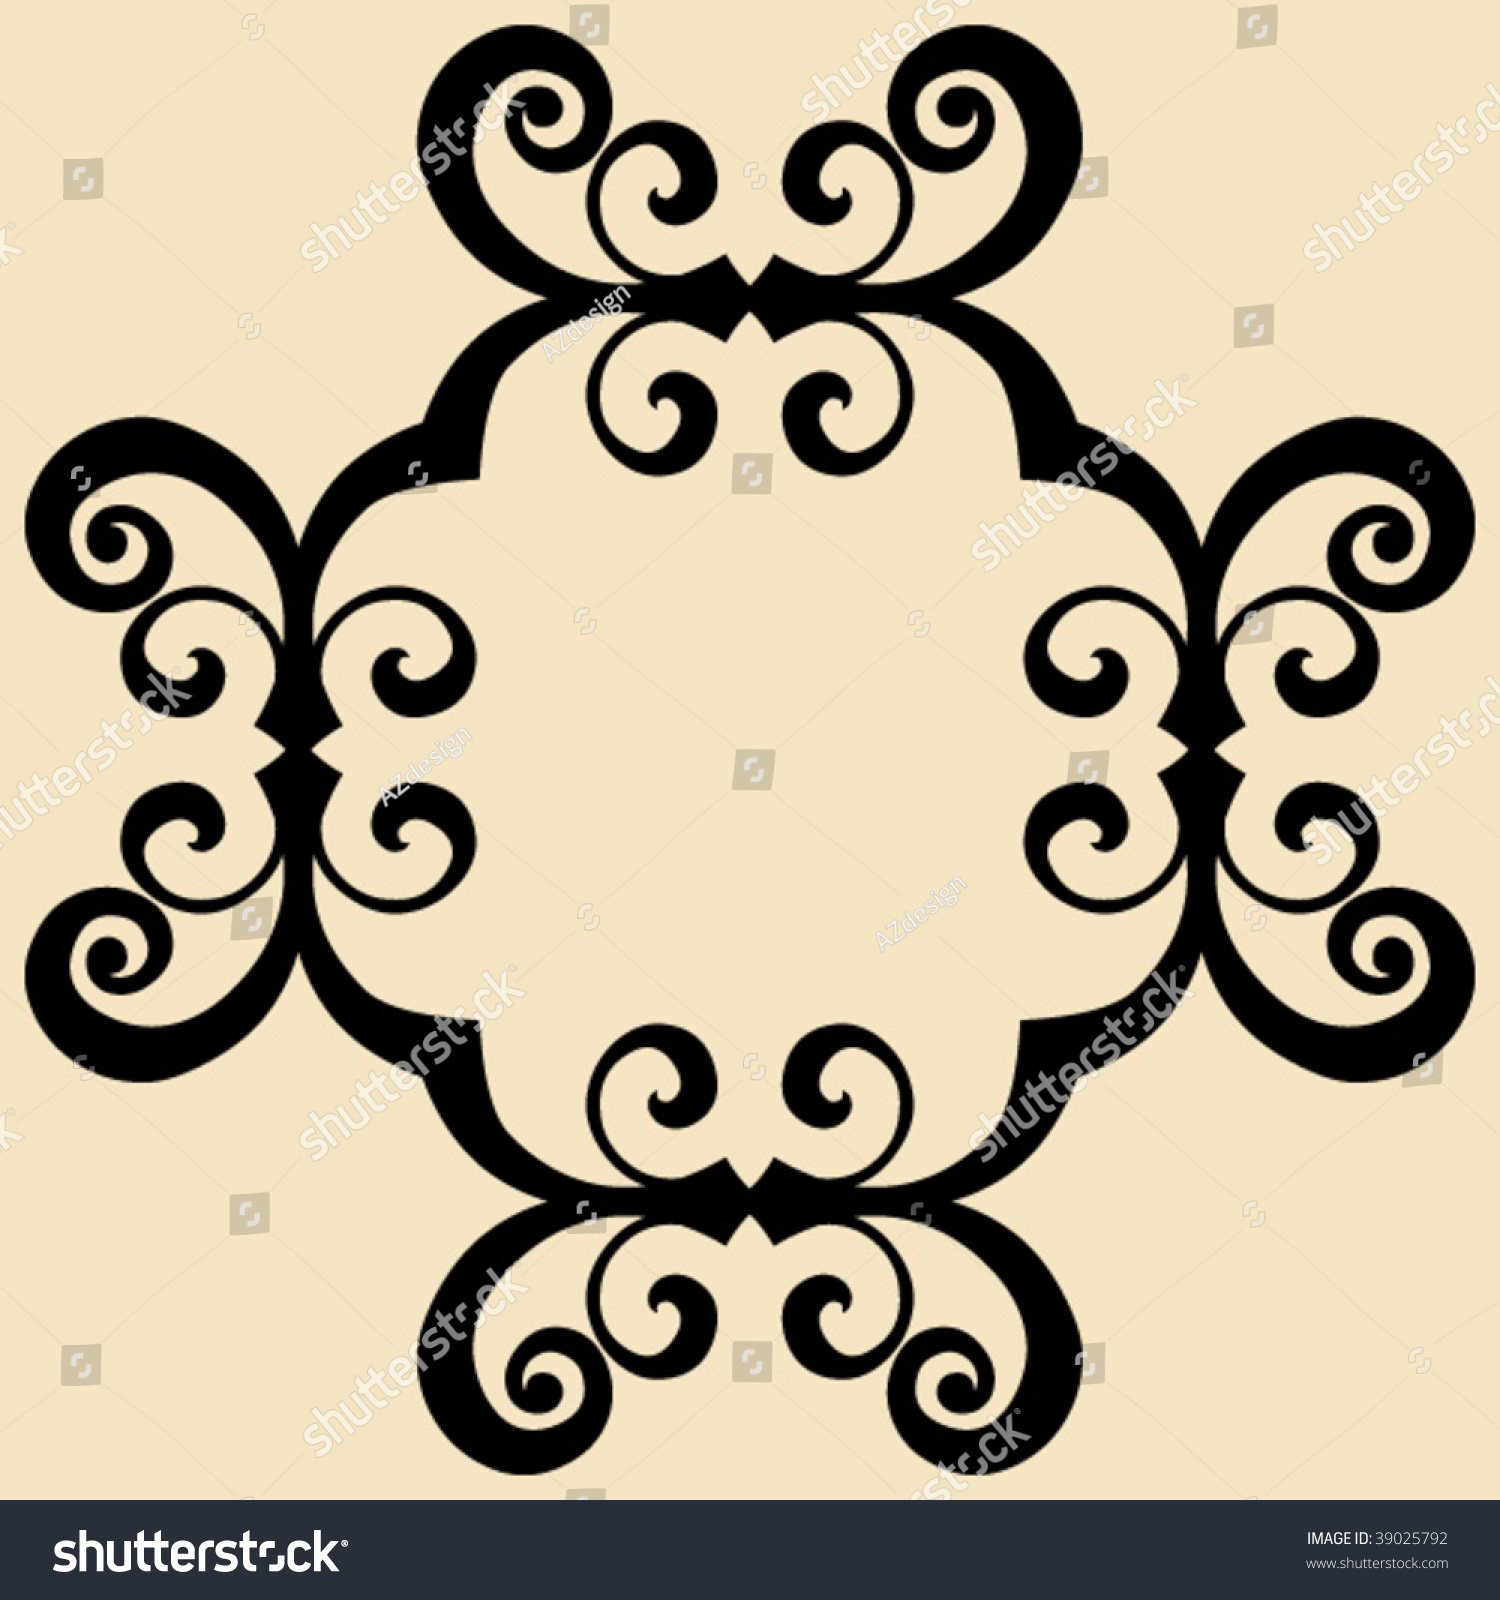 Baroque design element decorative vector ornament stock for Baroque design elements